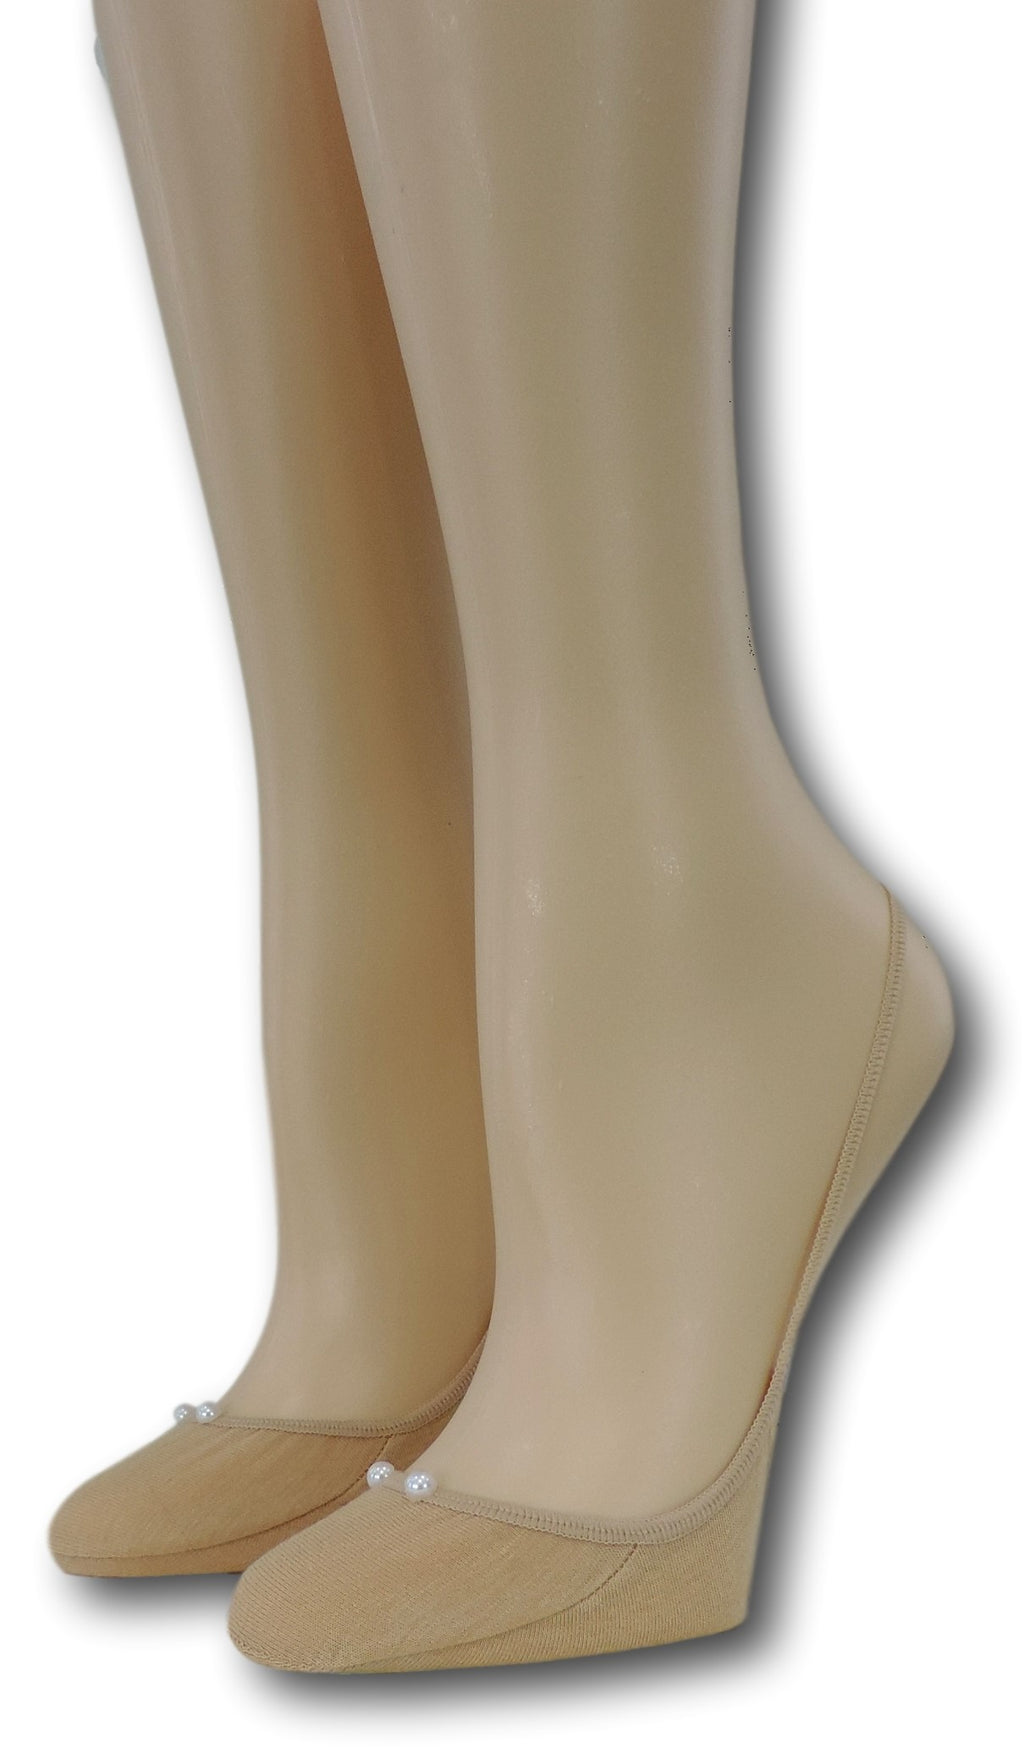 Slingback Beige Sheer Socks with beads